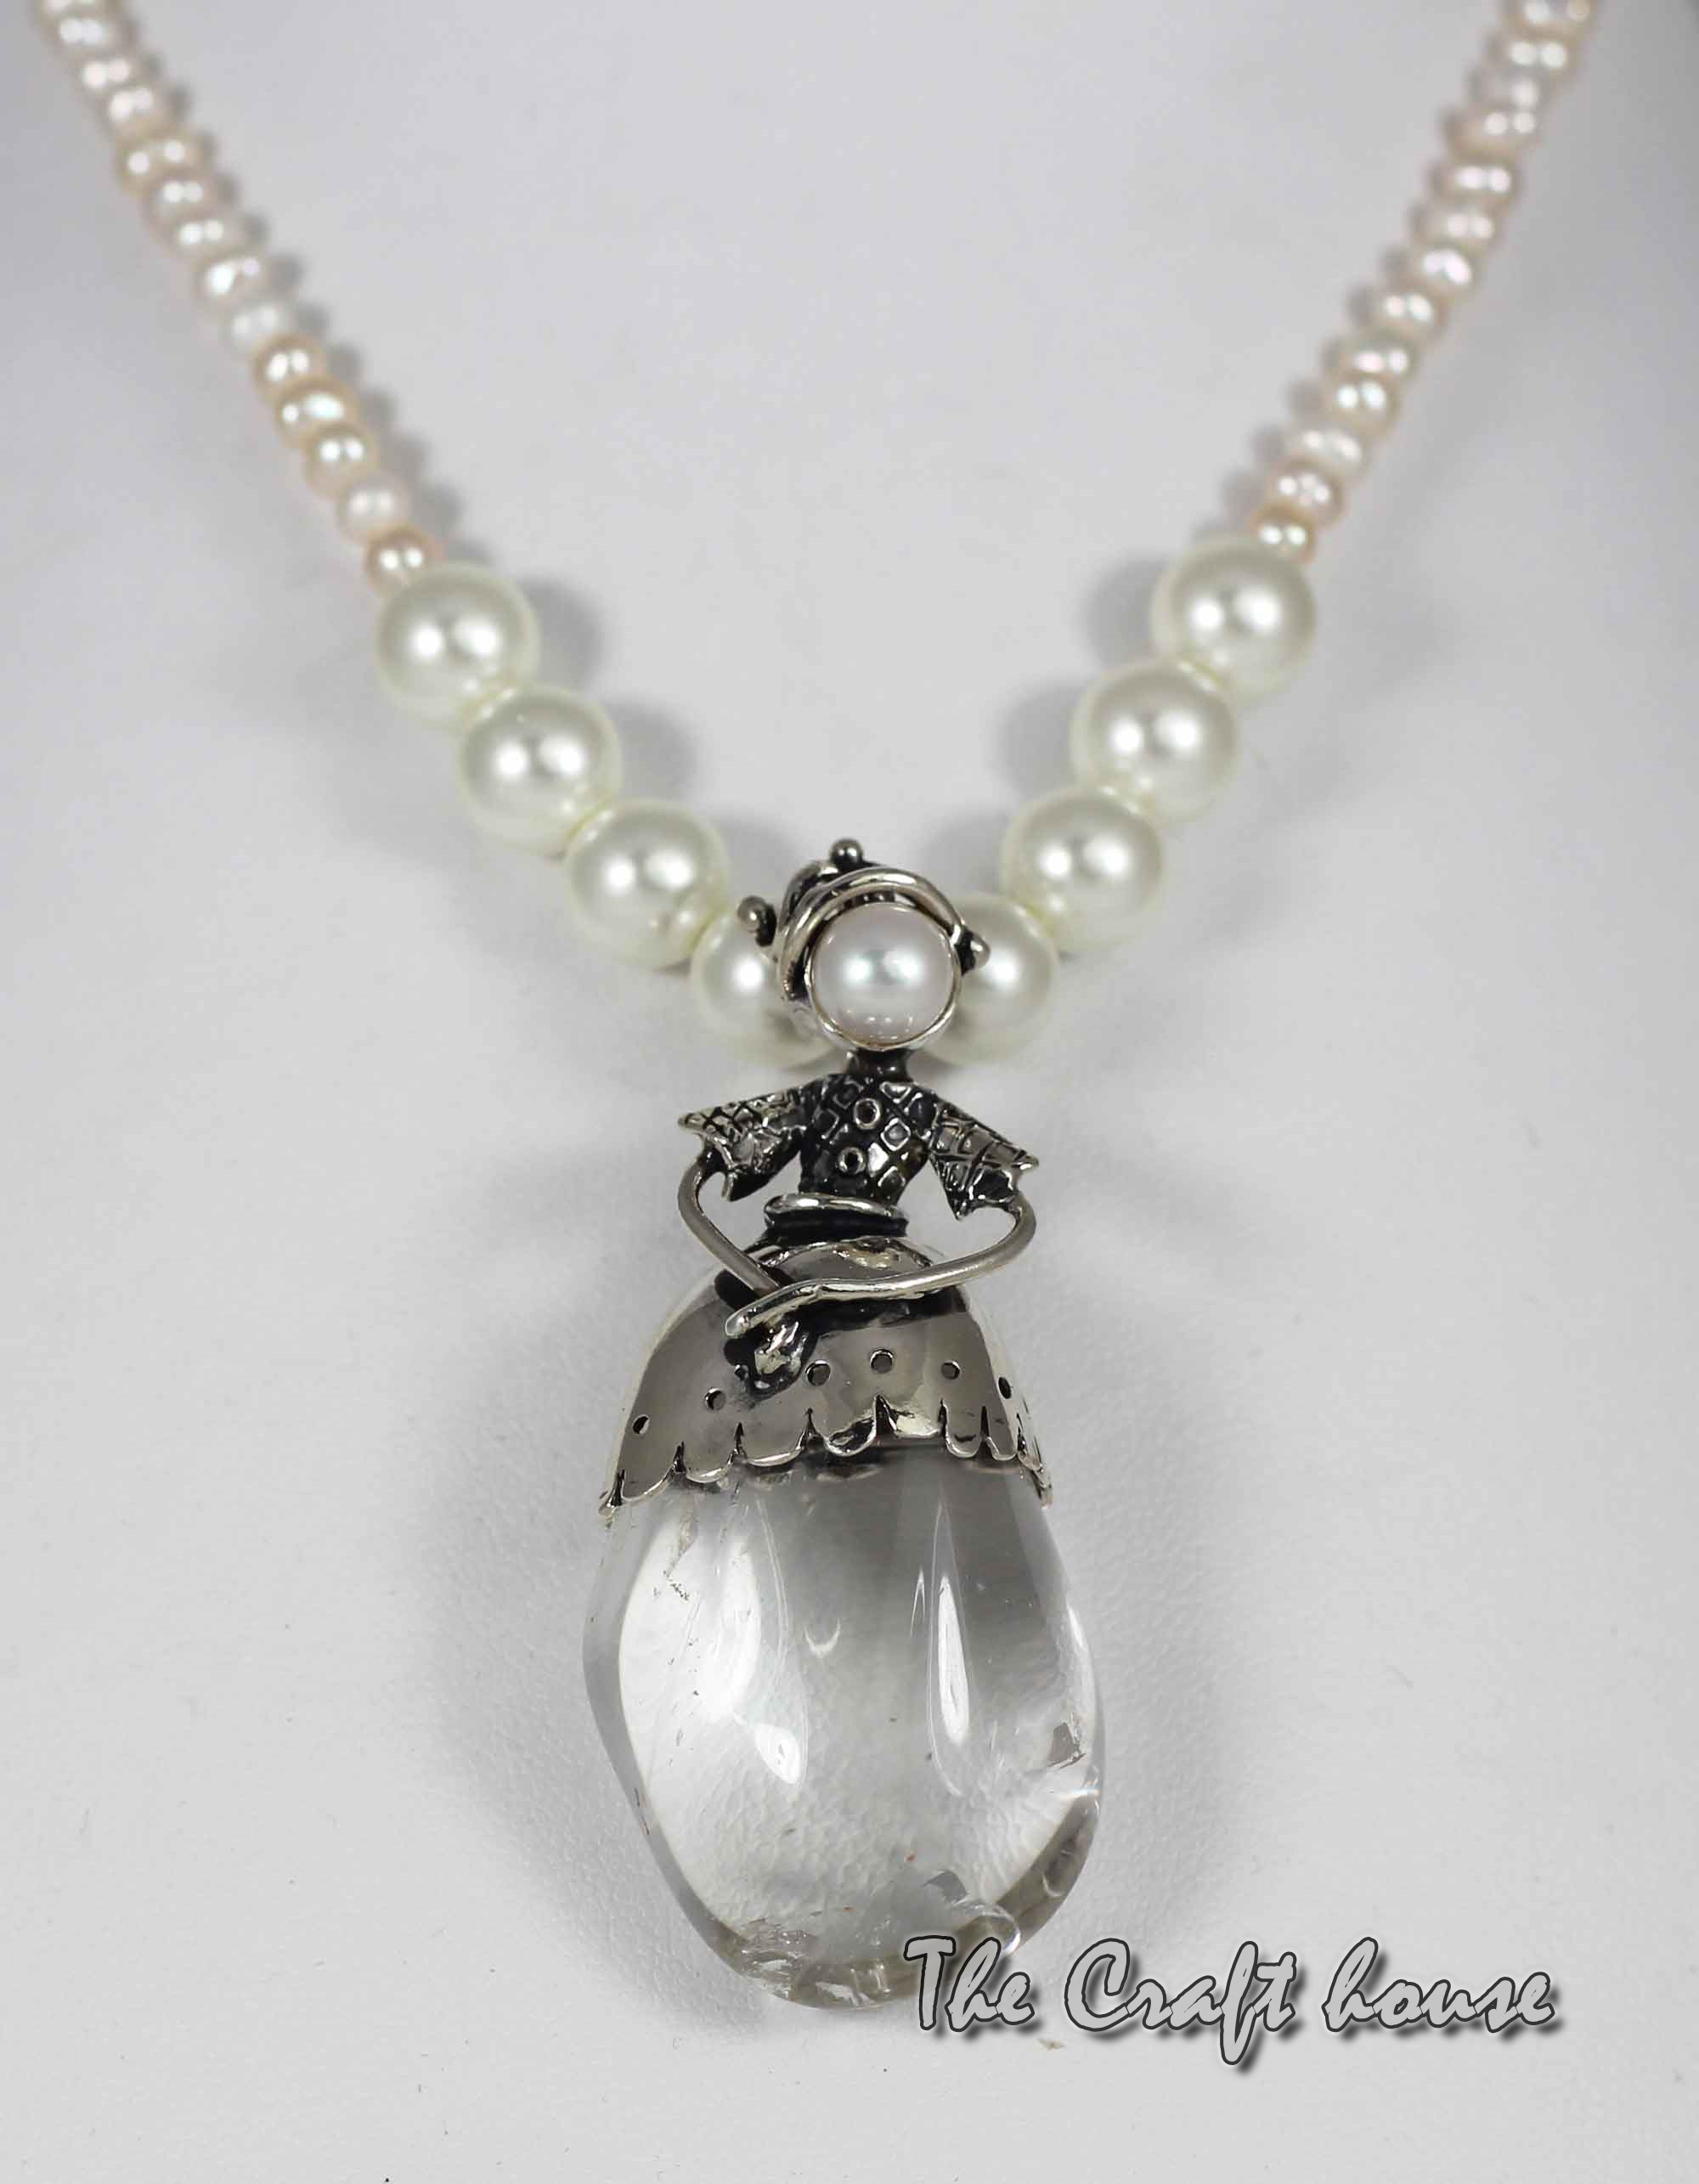 Silver necklace with Rock crystal and pearls